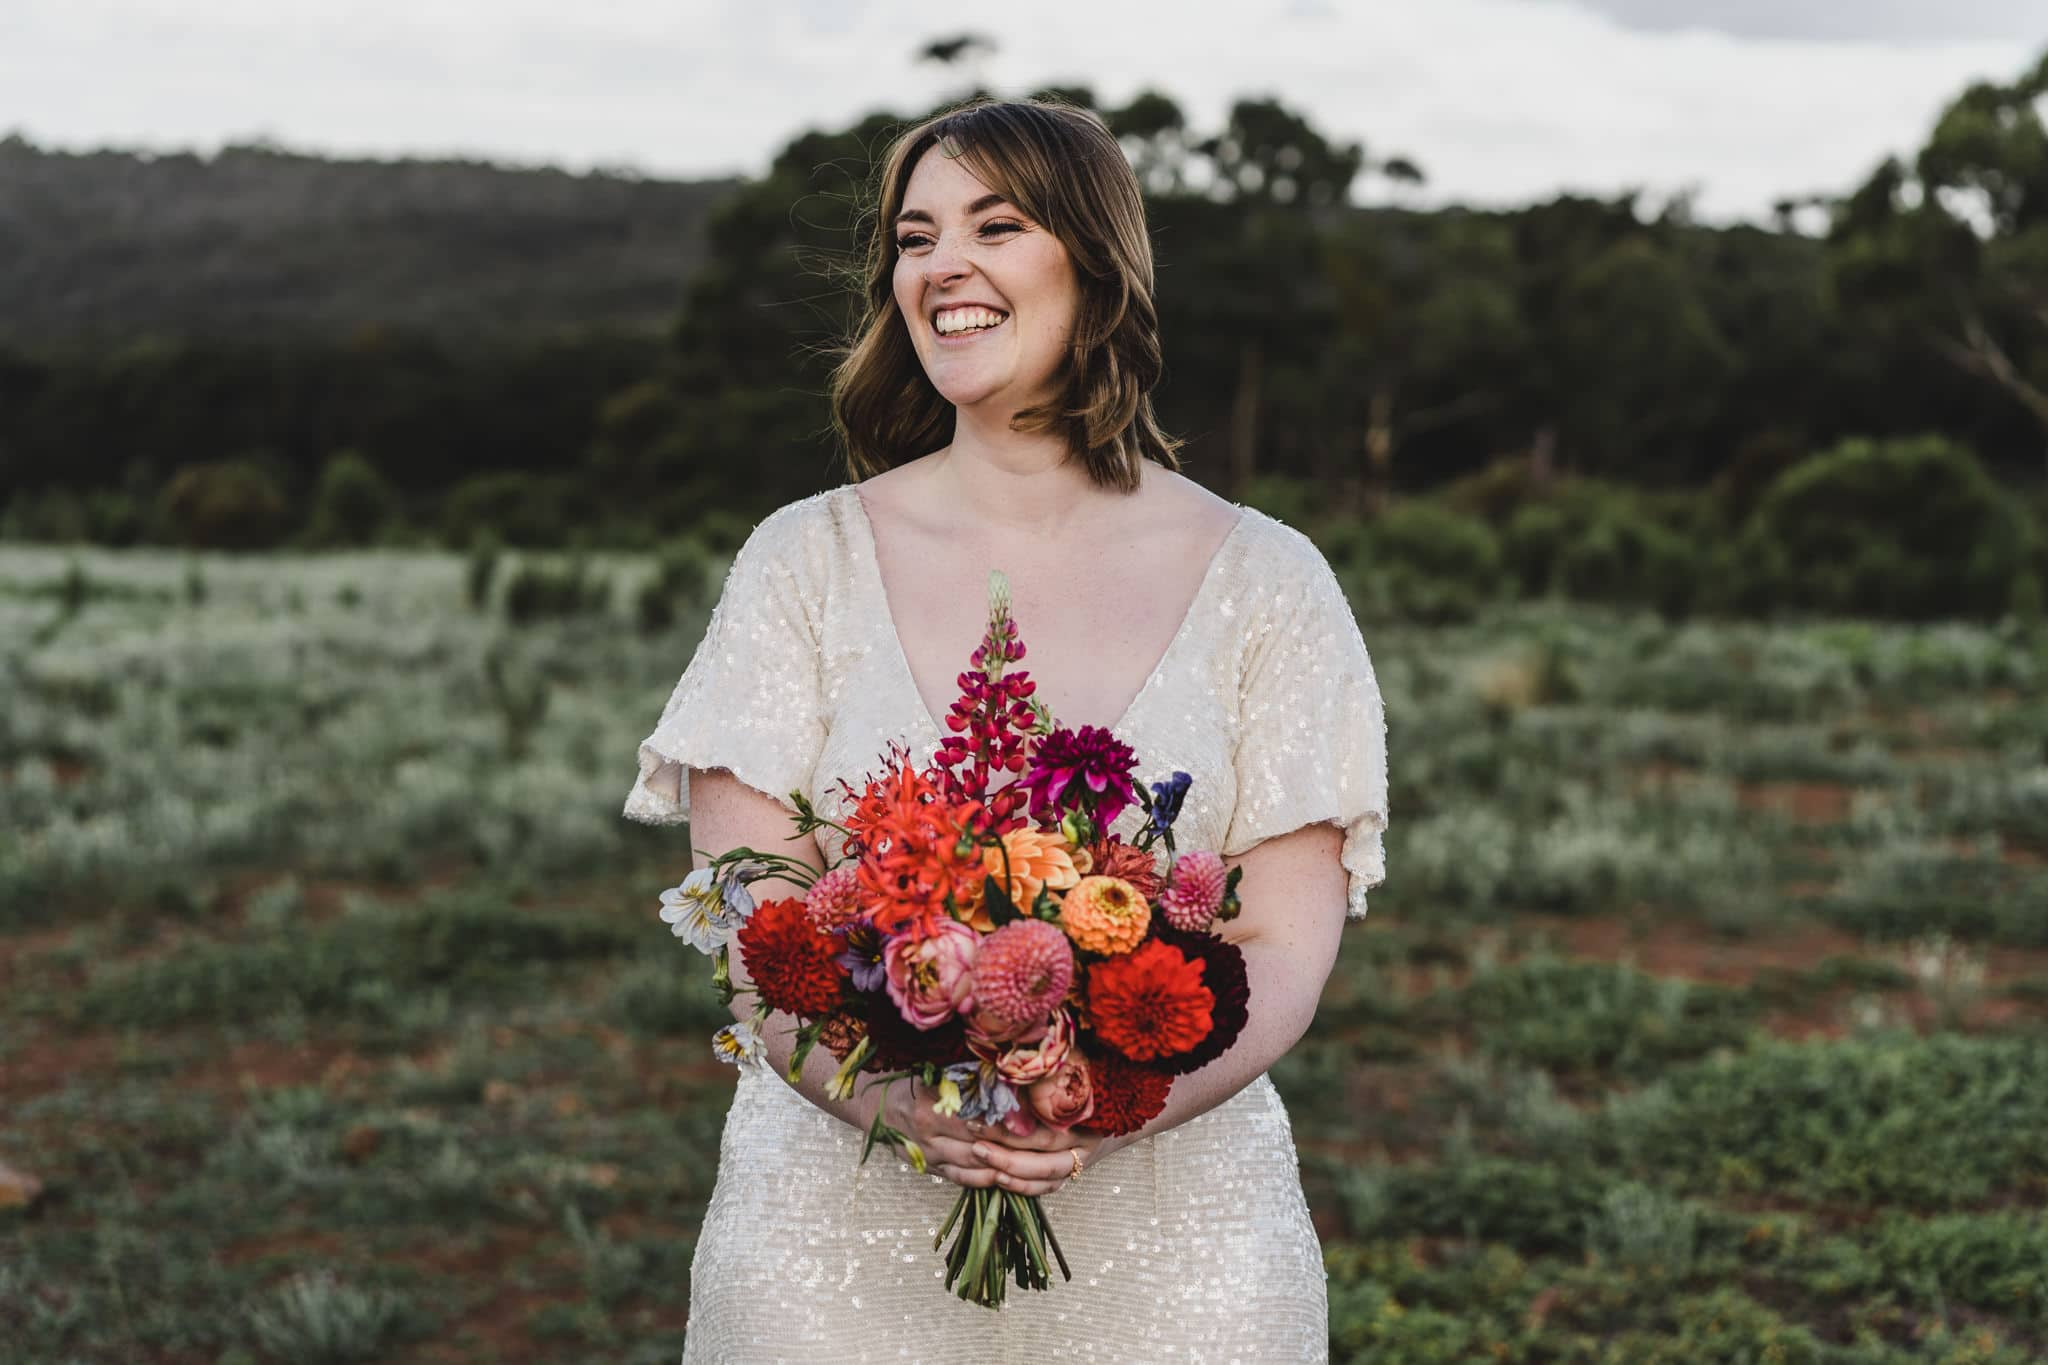 The bride's bouquet was made by Georgie Boy